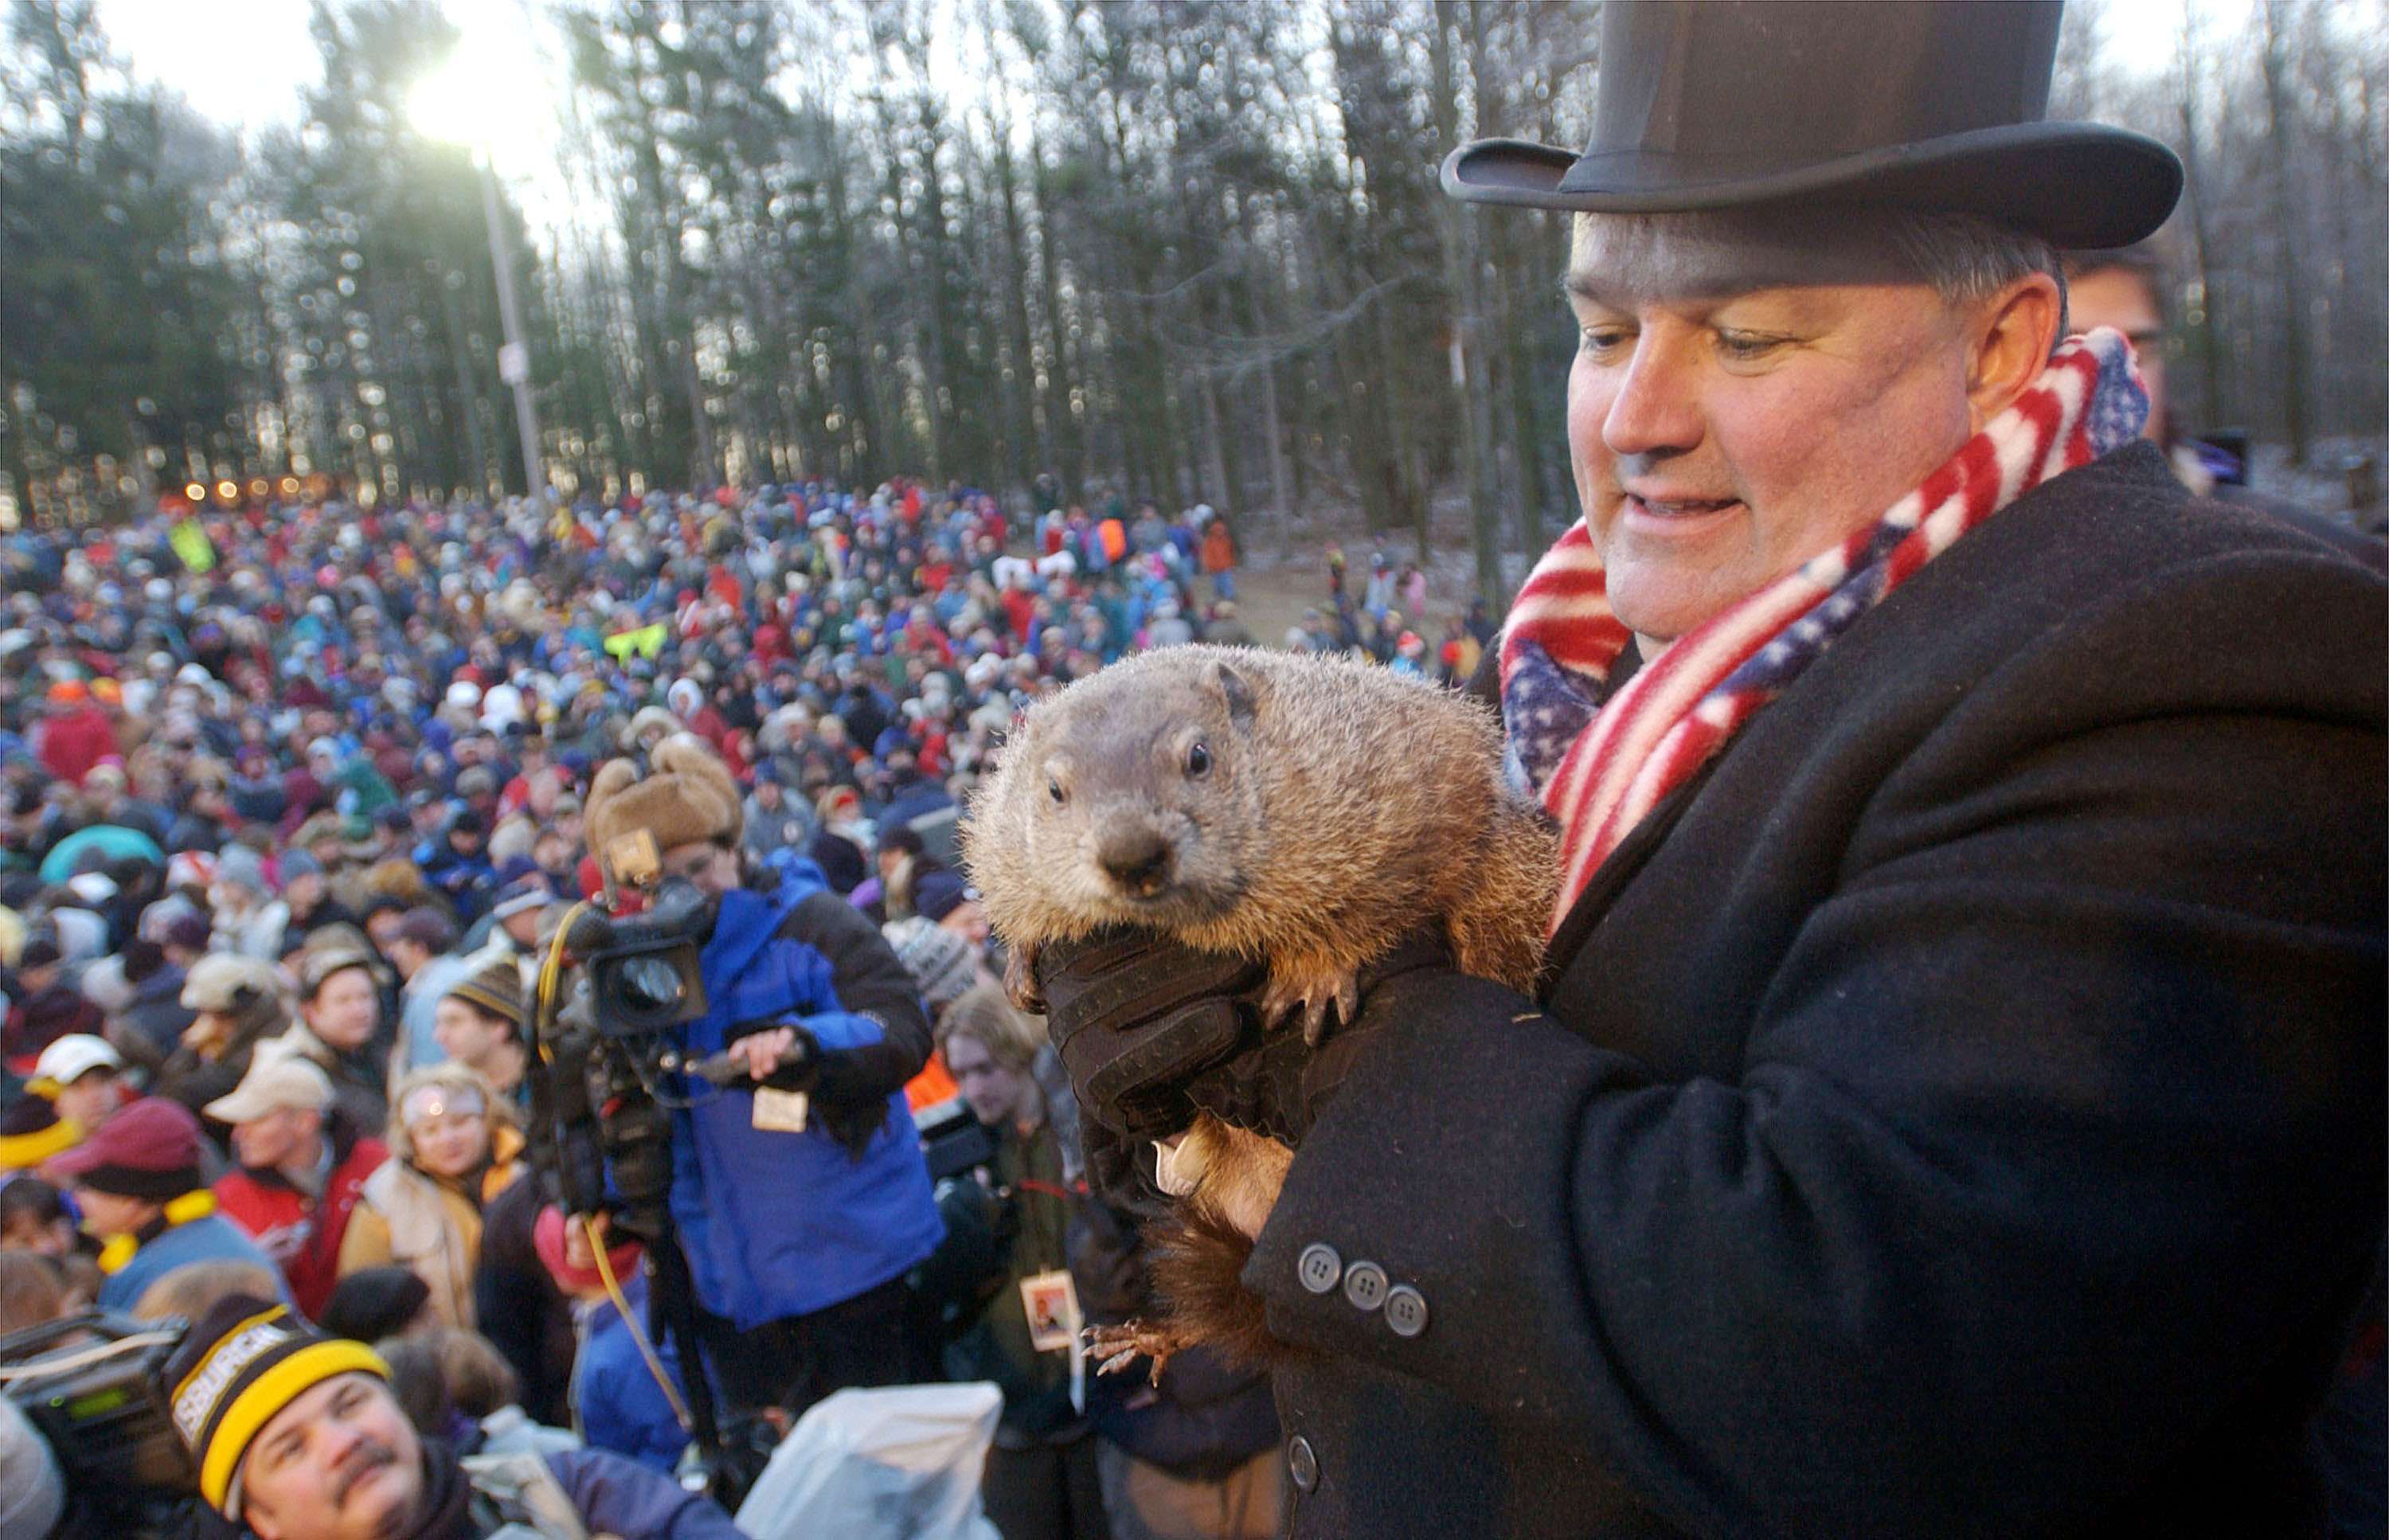 Groundhog Day prediction: Six more weeks of winter